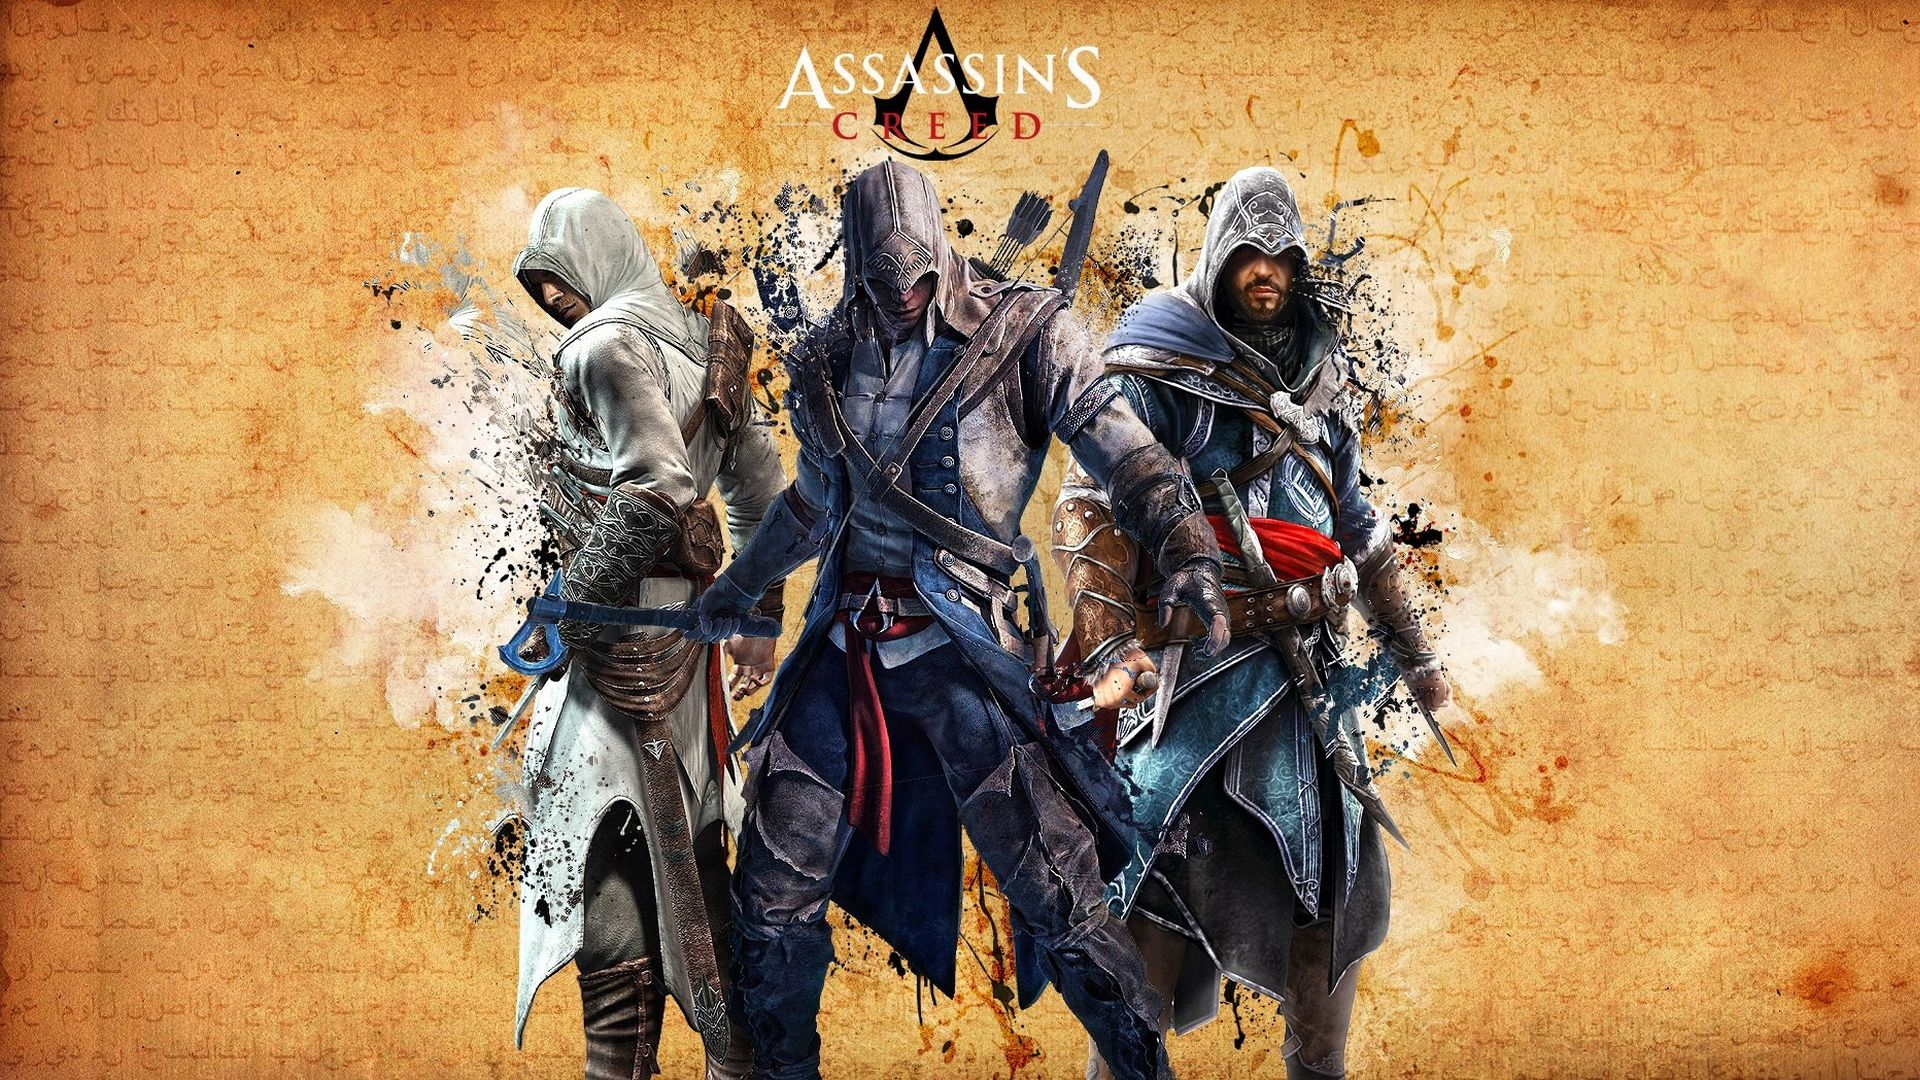 assassins_creed_3_2012-wallpaper-1920x1080.jpg